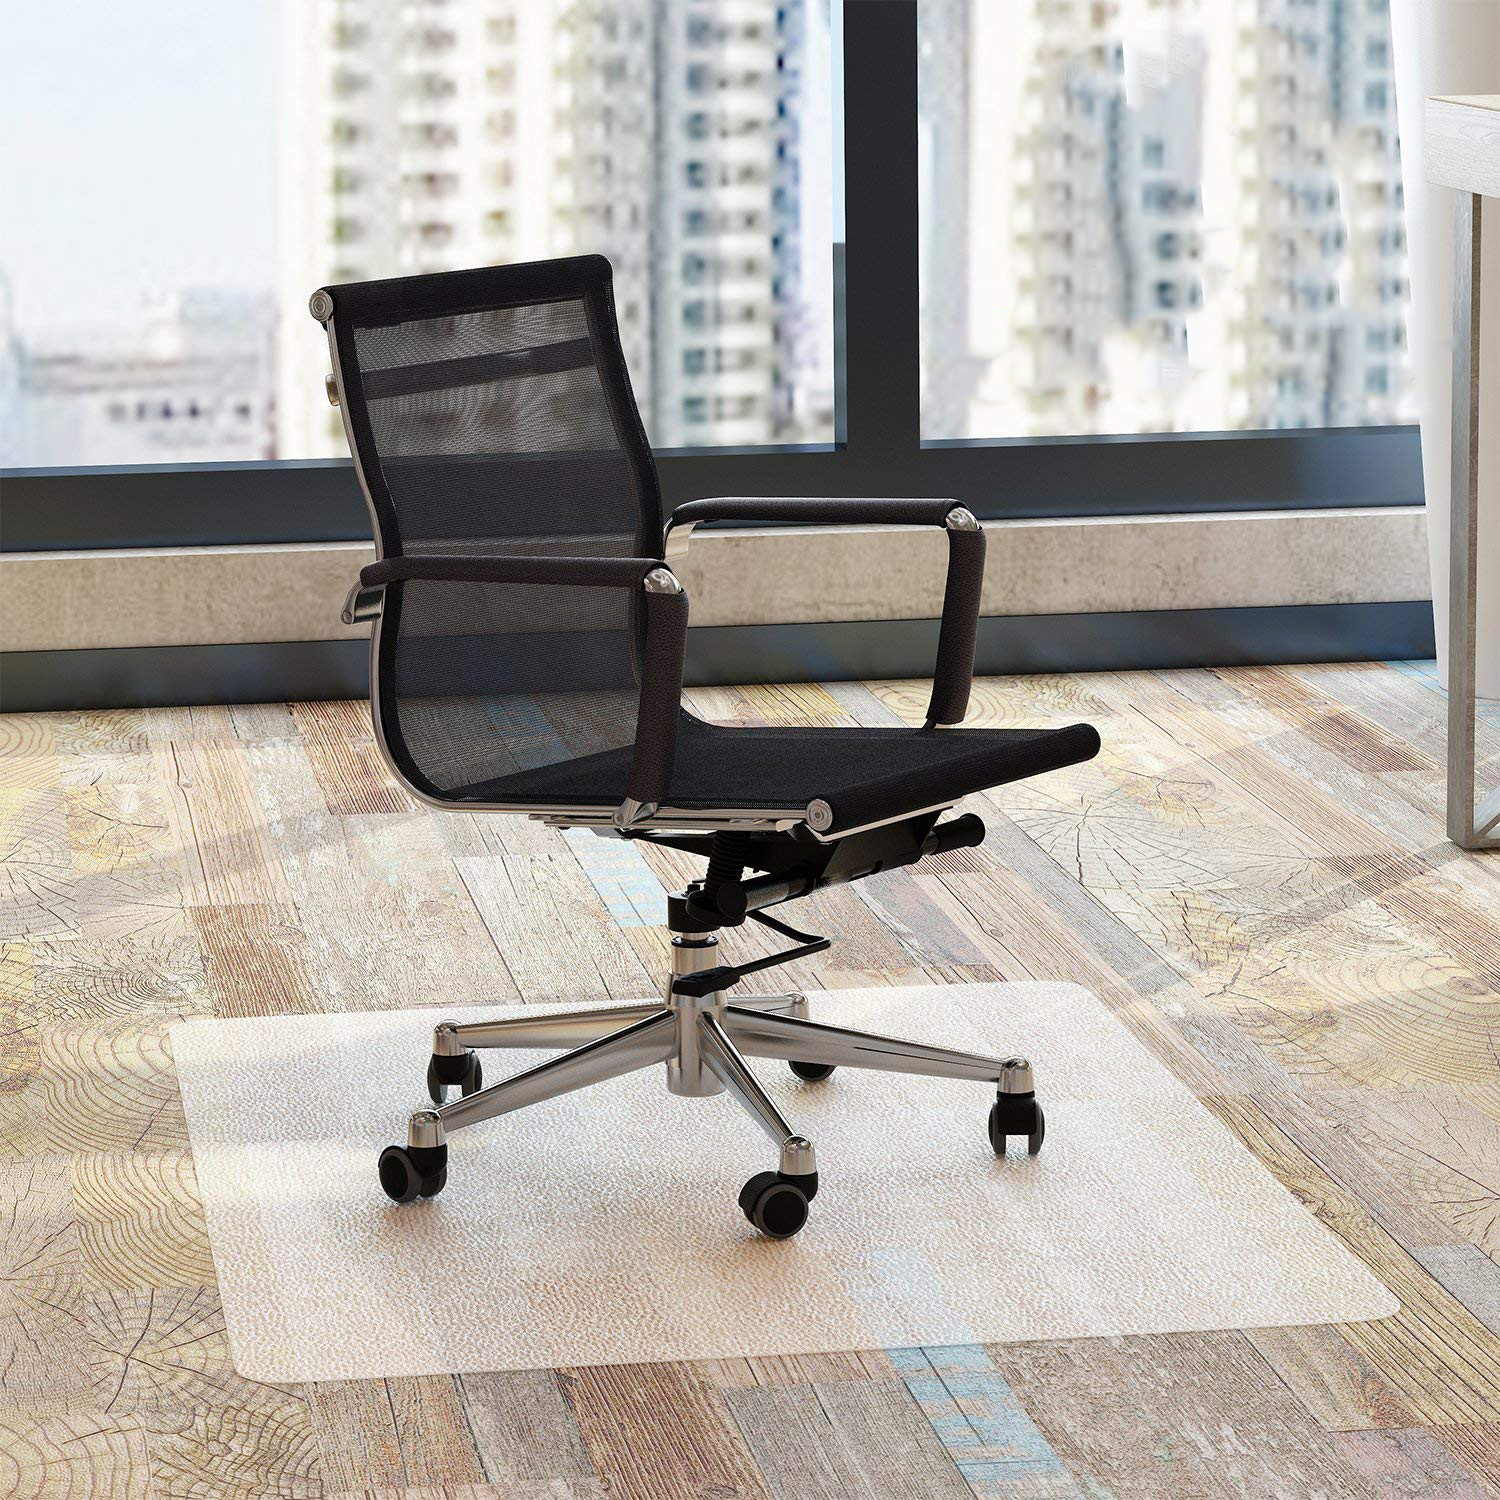 Best ideas about Office Chair Mats . Save or Pin UBesGoo Chair Mat fice for Hardwood Floor Mats for Desk Now.